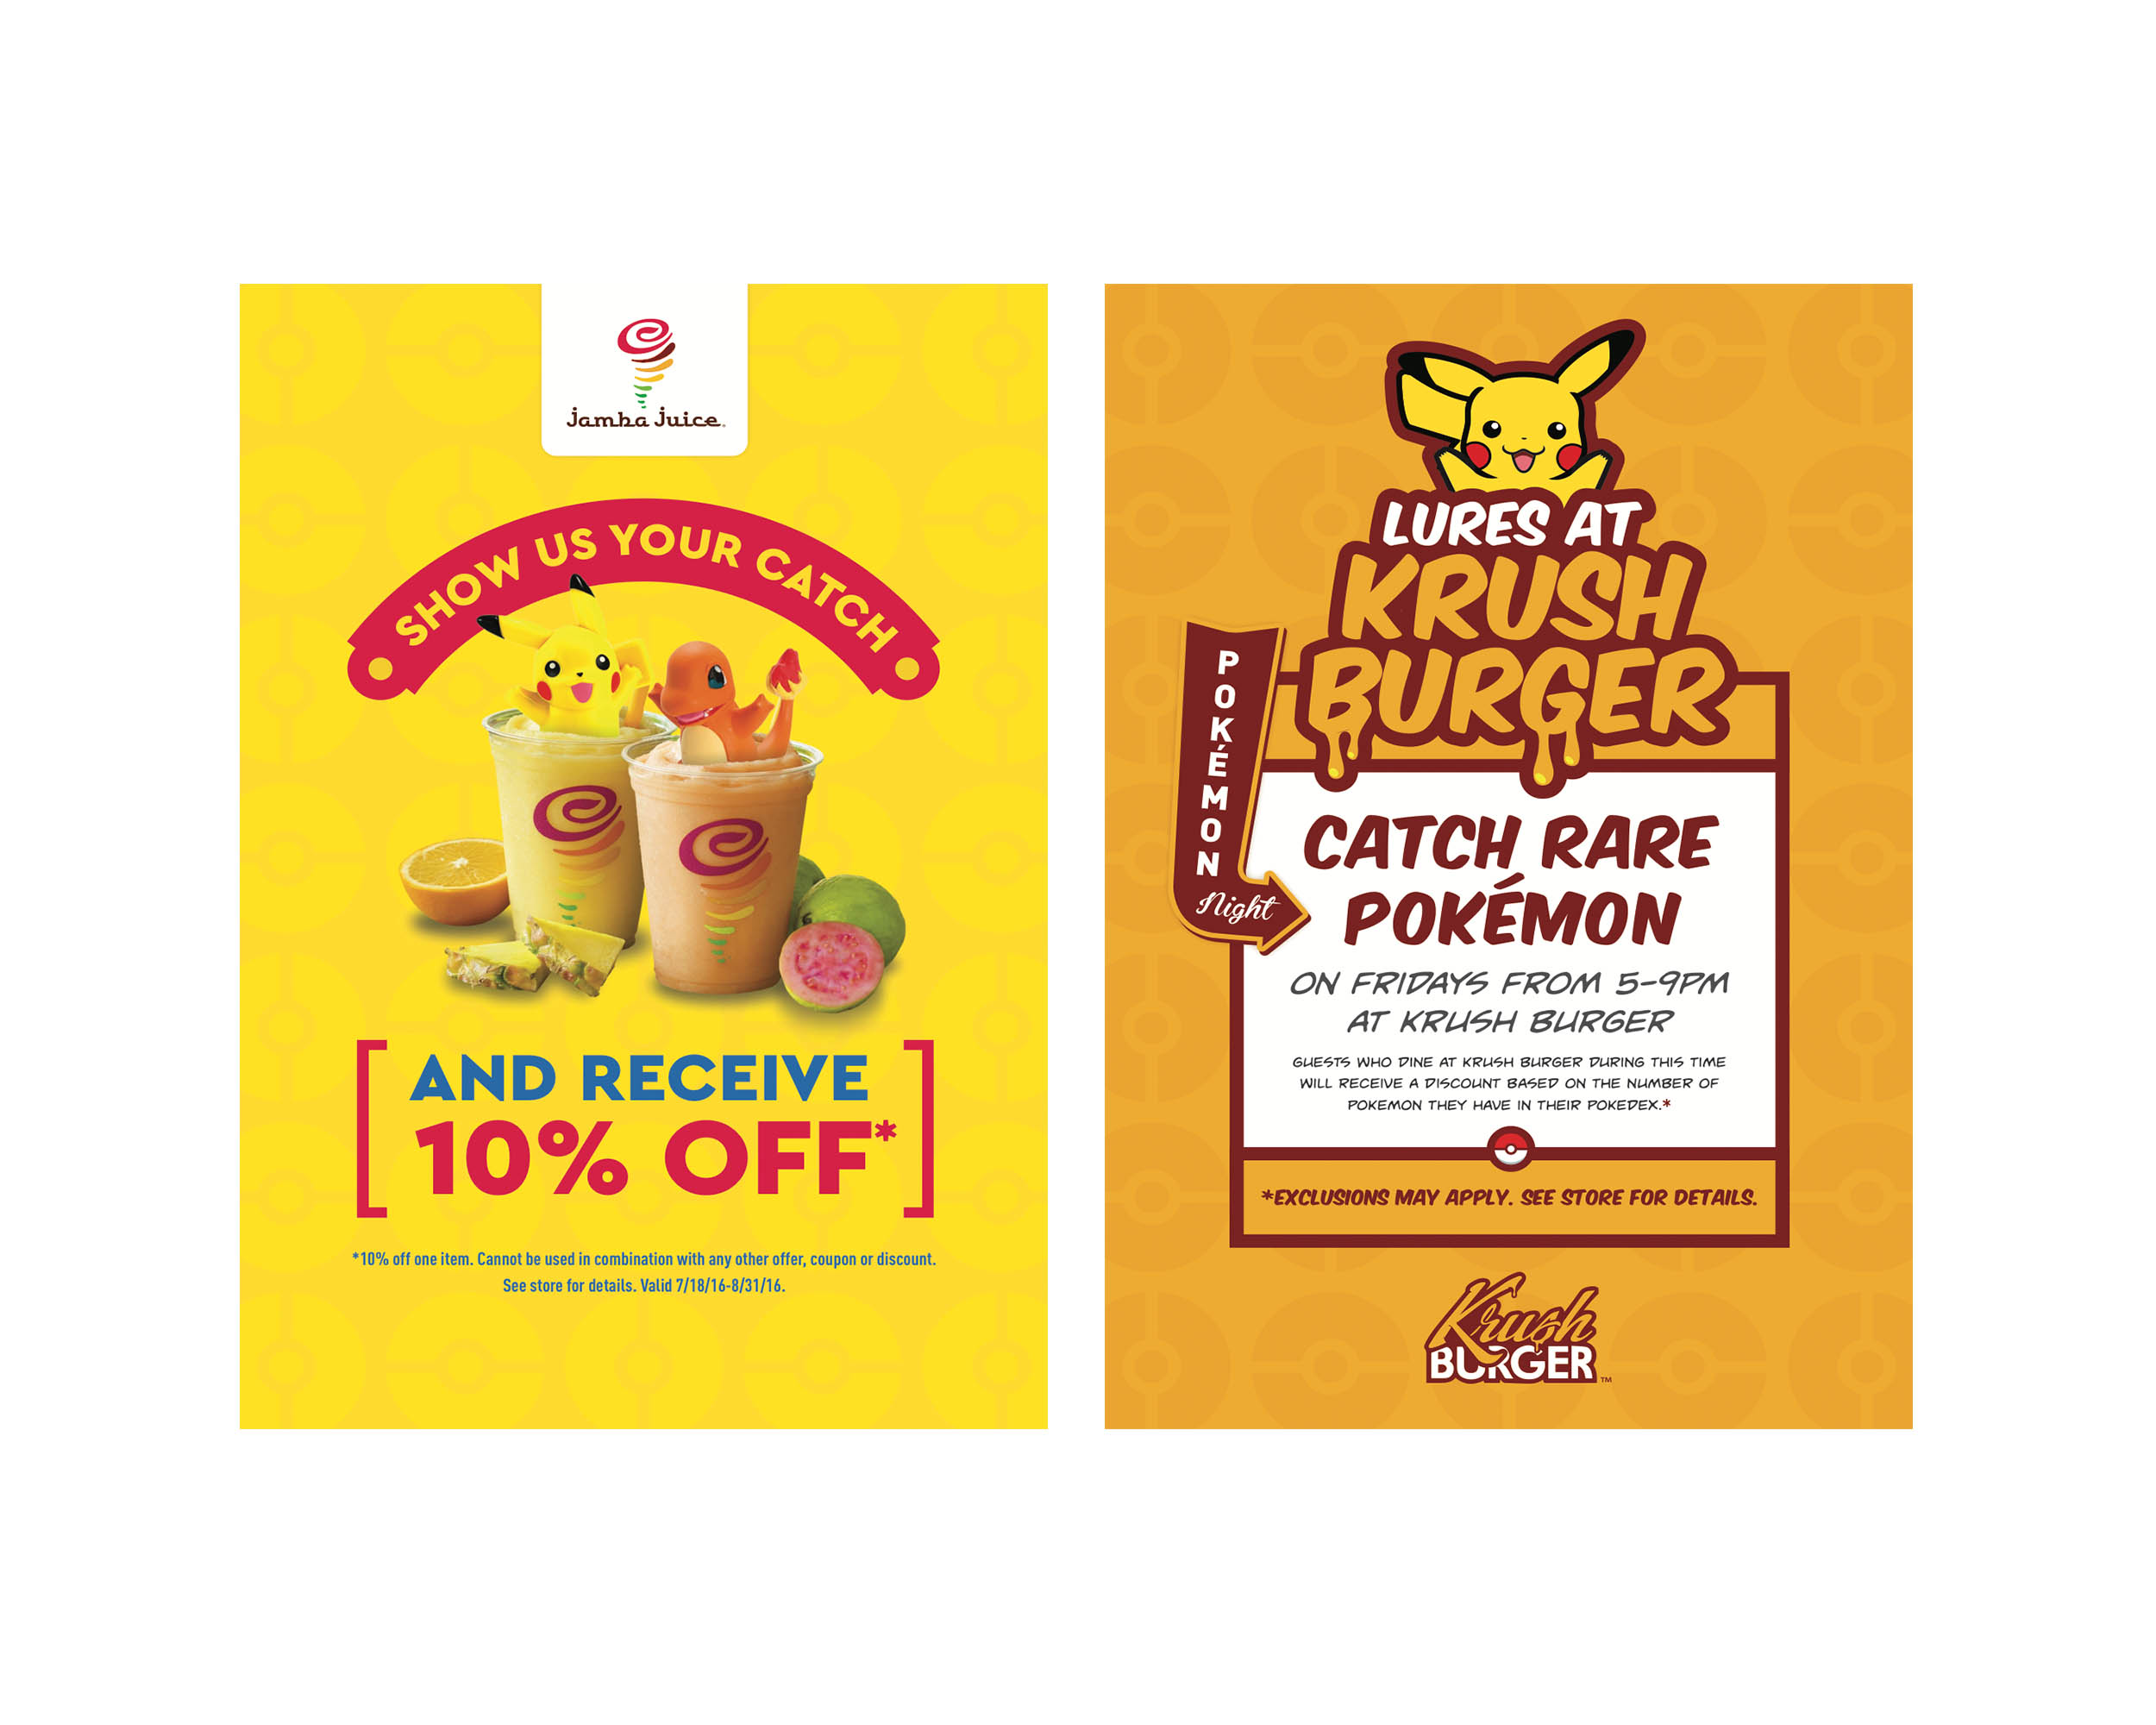 Jamba Juice and Krush Burger Pokémon Go Posters